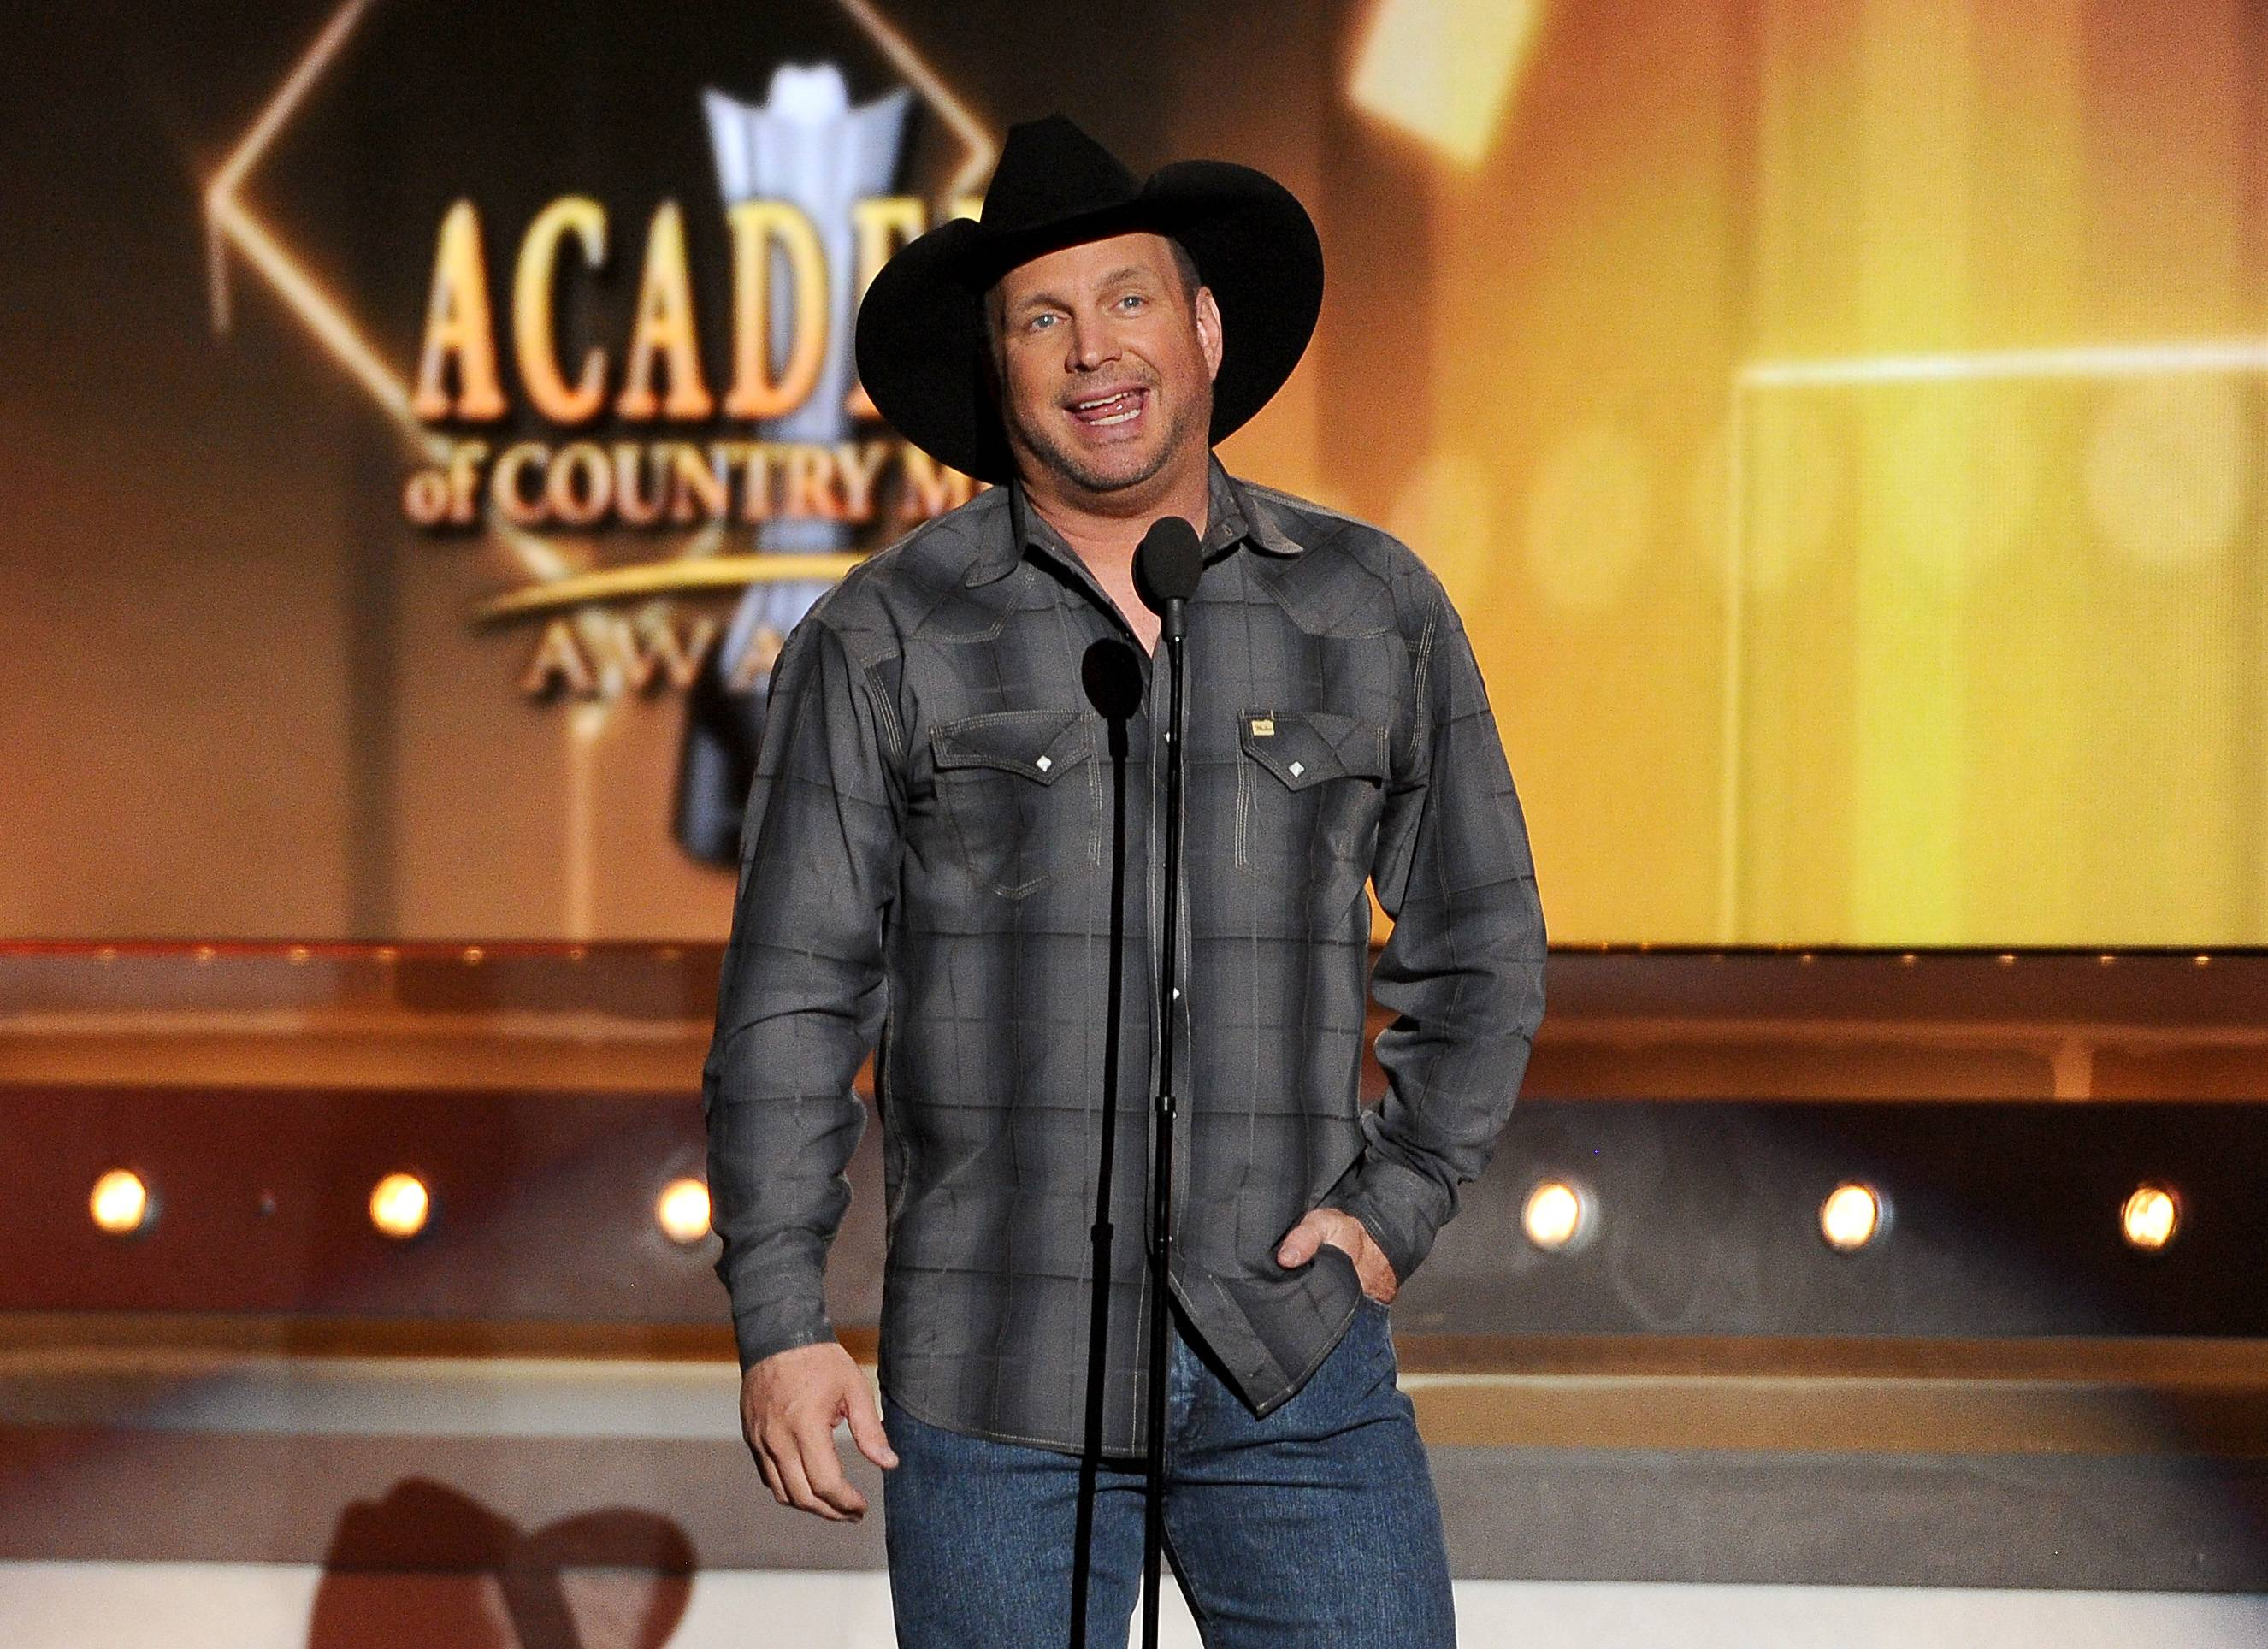 Garth Brooks speaks on stage at the 49th annual Academy of Country Music Awards.